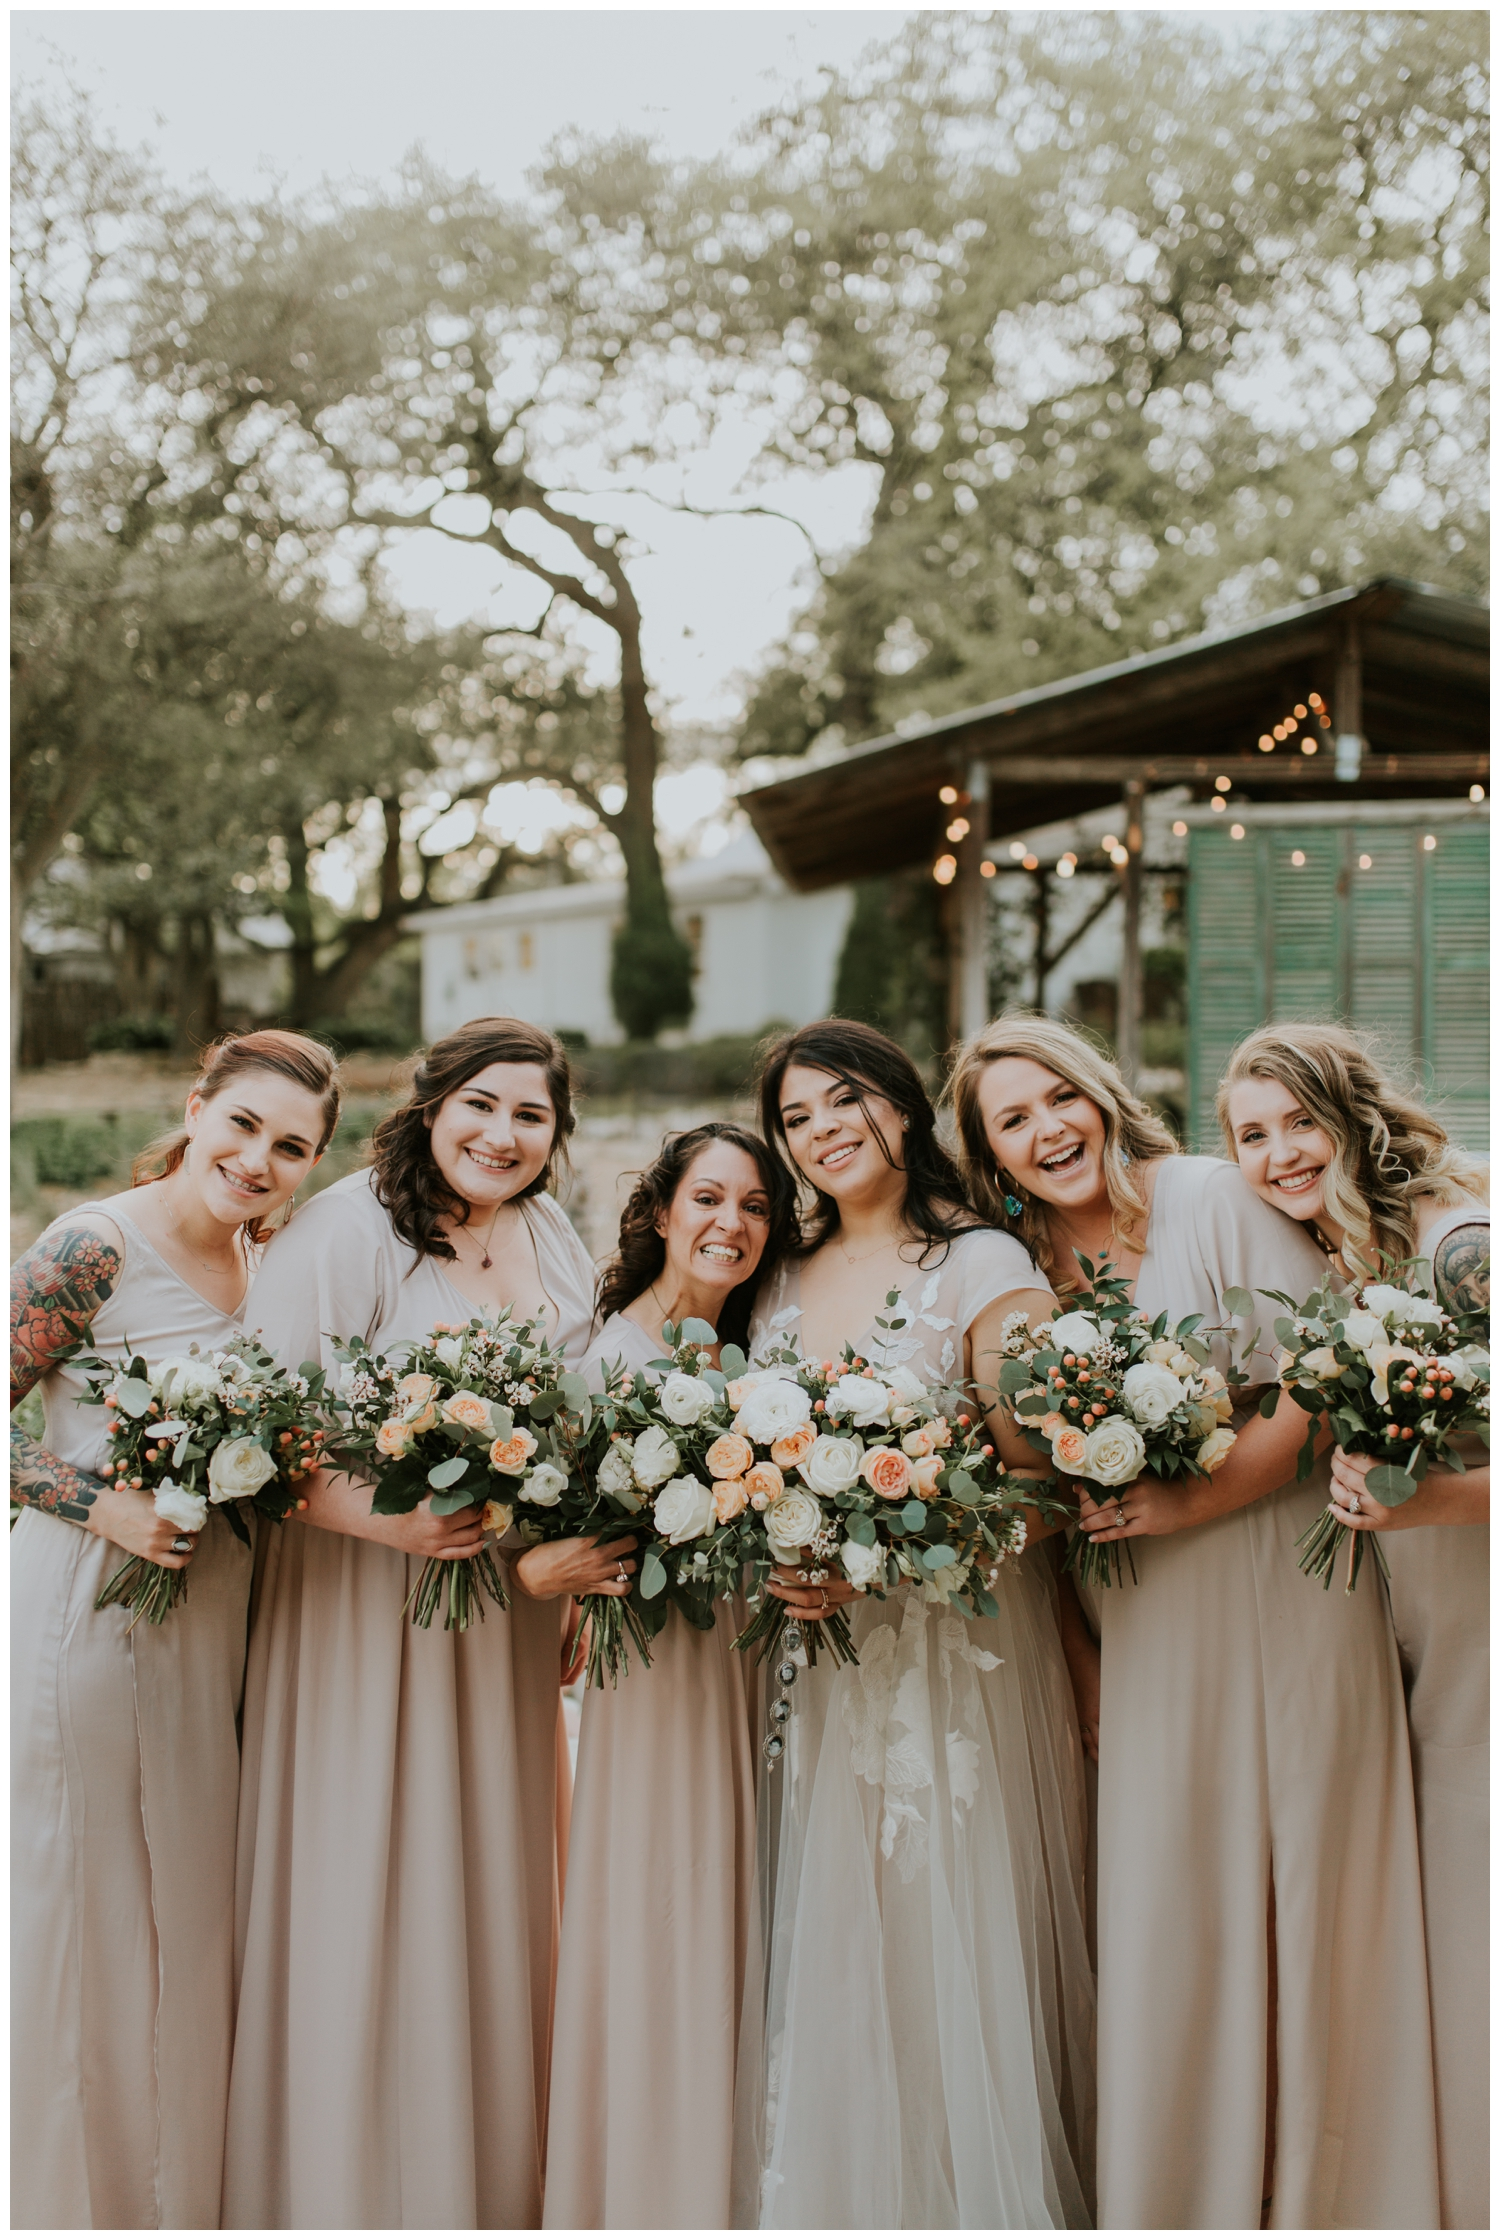 Sarah+Michael, Gruene Estate Wedding, San Antonio, Contista Productions Wedding Photography_0042.jpg